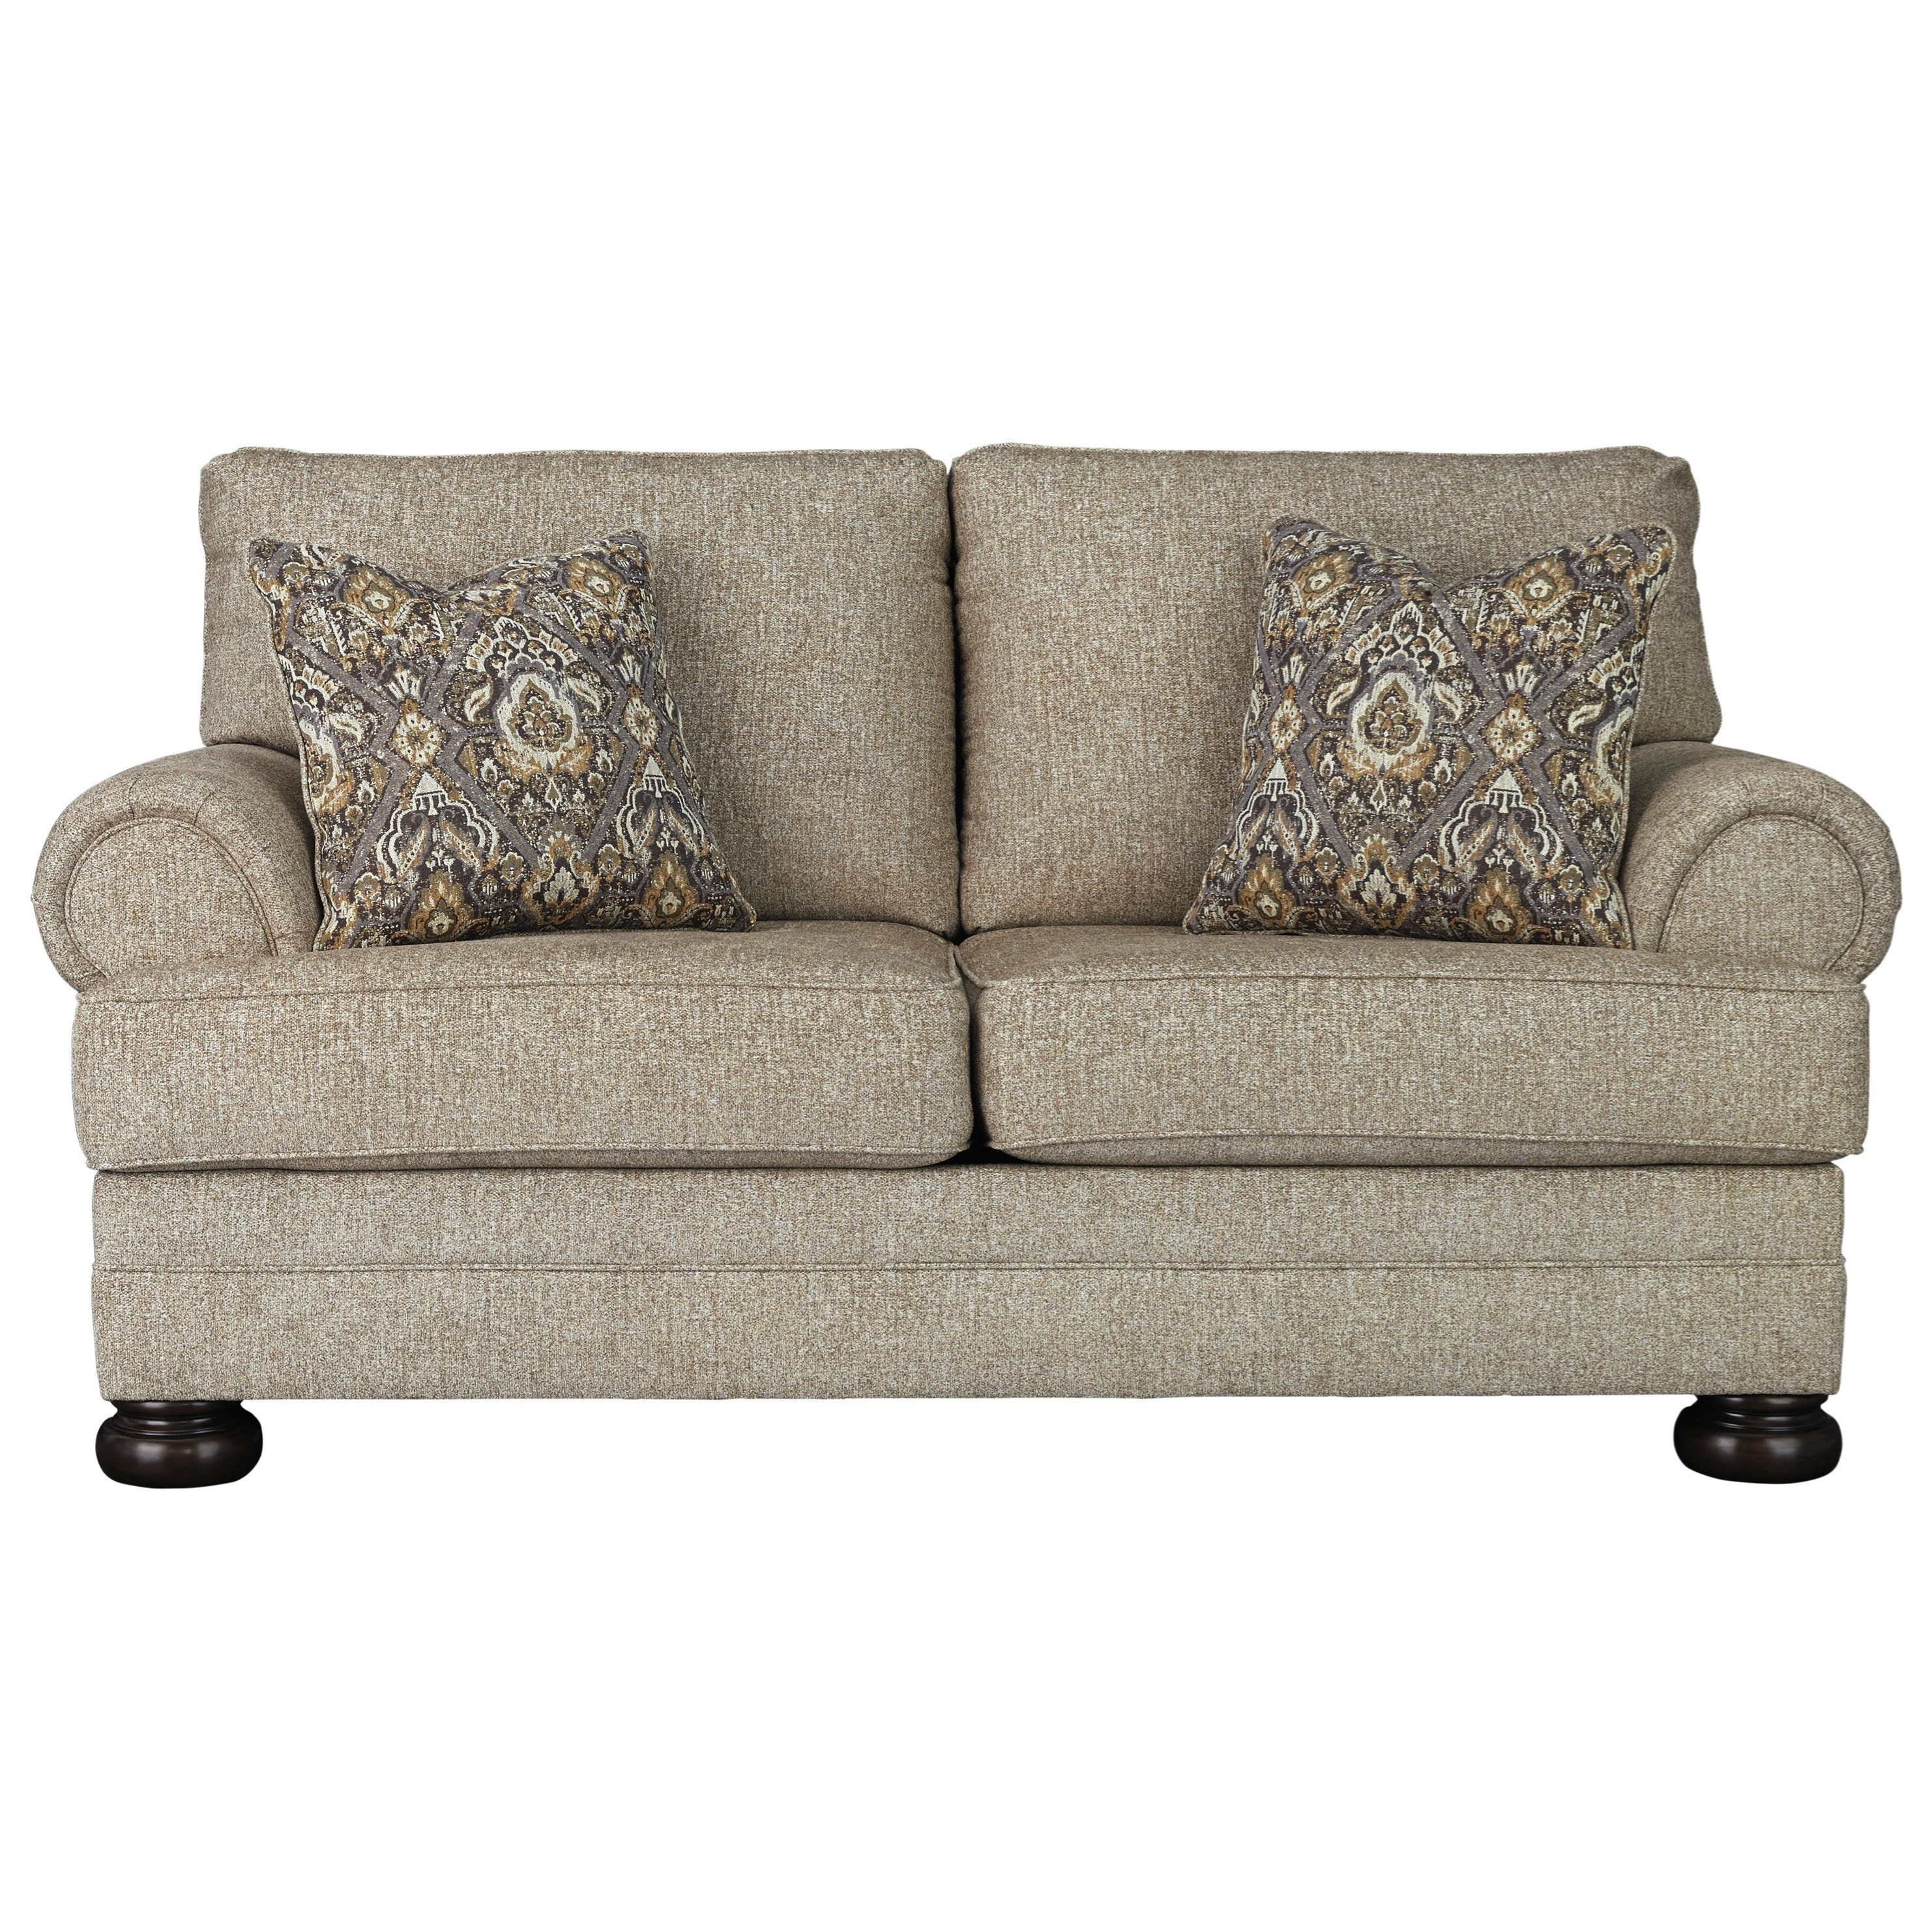 Loveseat with Rolled Arms and Bun Feet